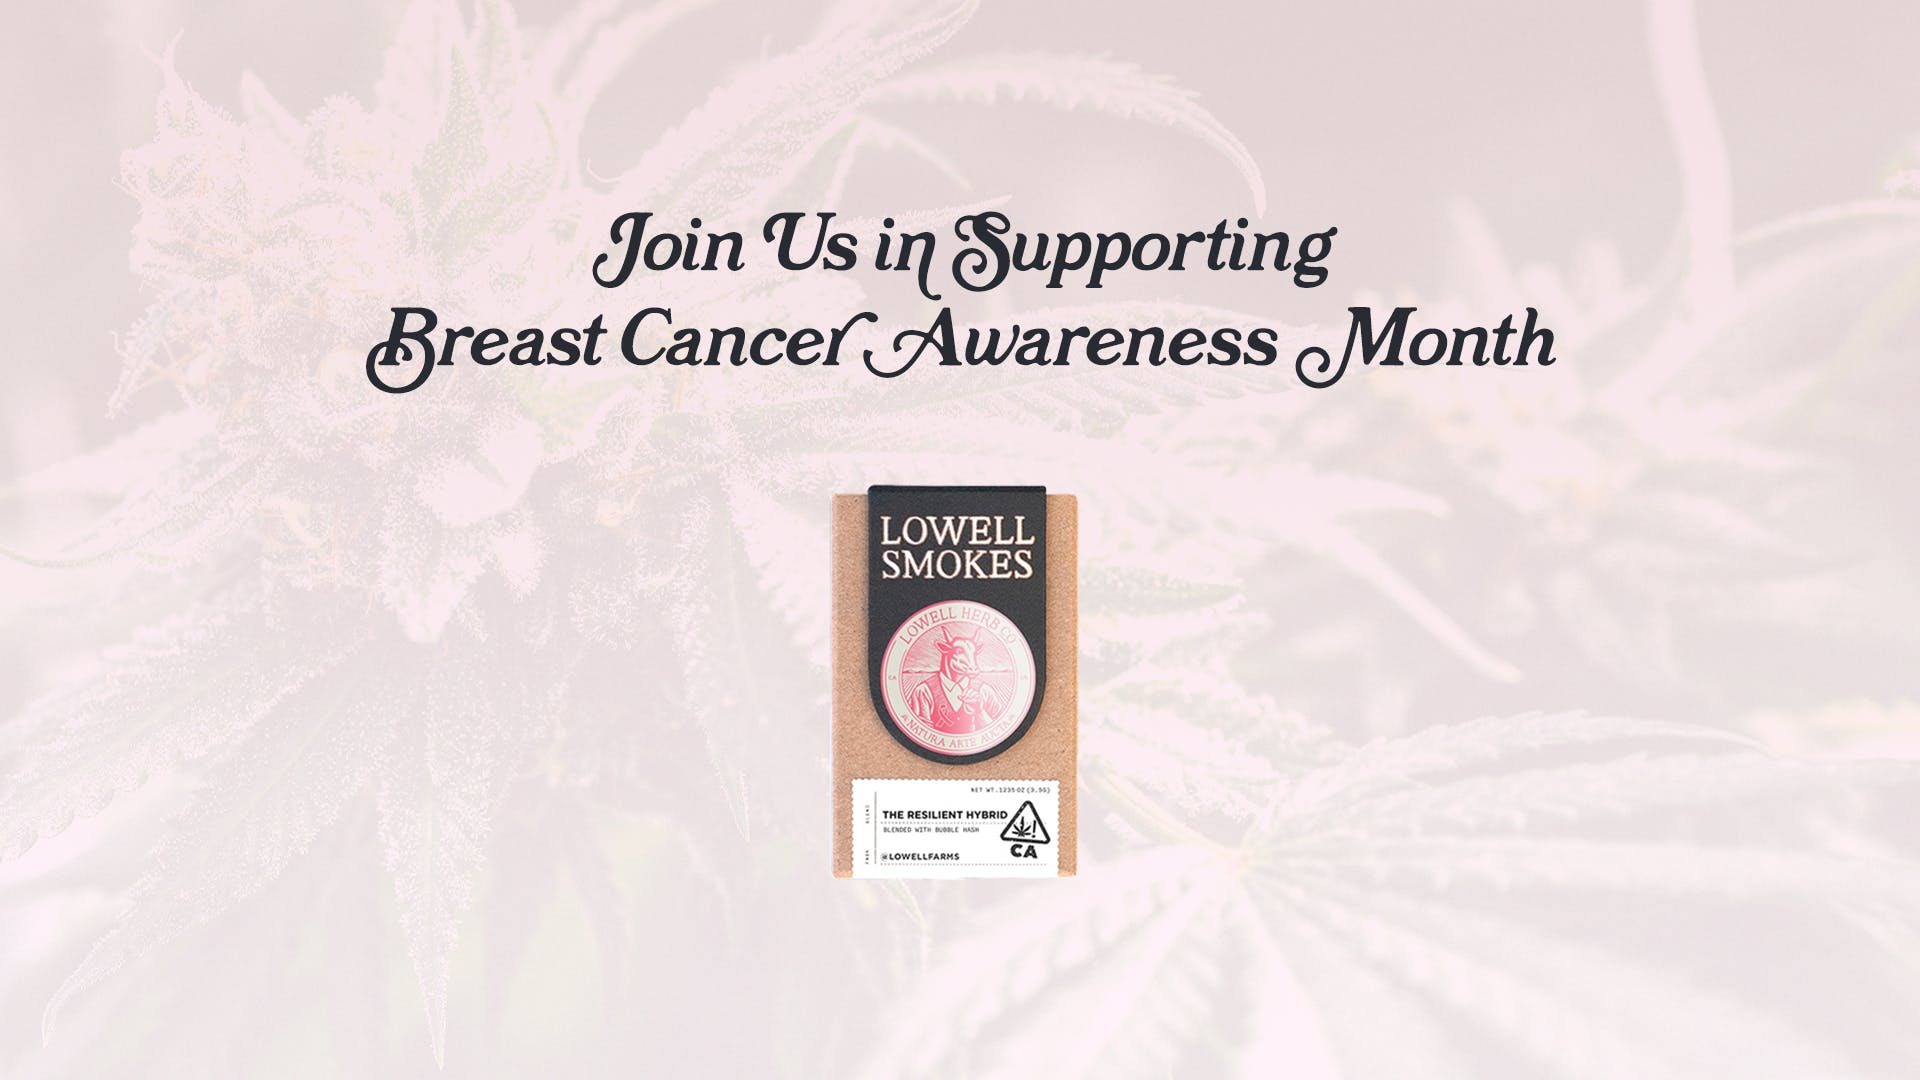 LIMITED-EDITION SMOKES PACK TO BENEFIT THE BREASTIES